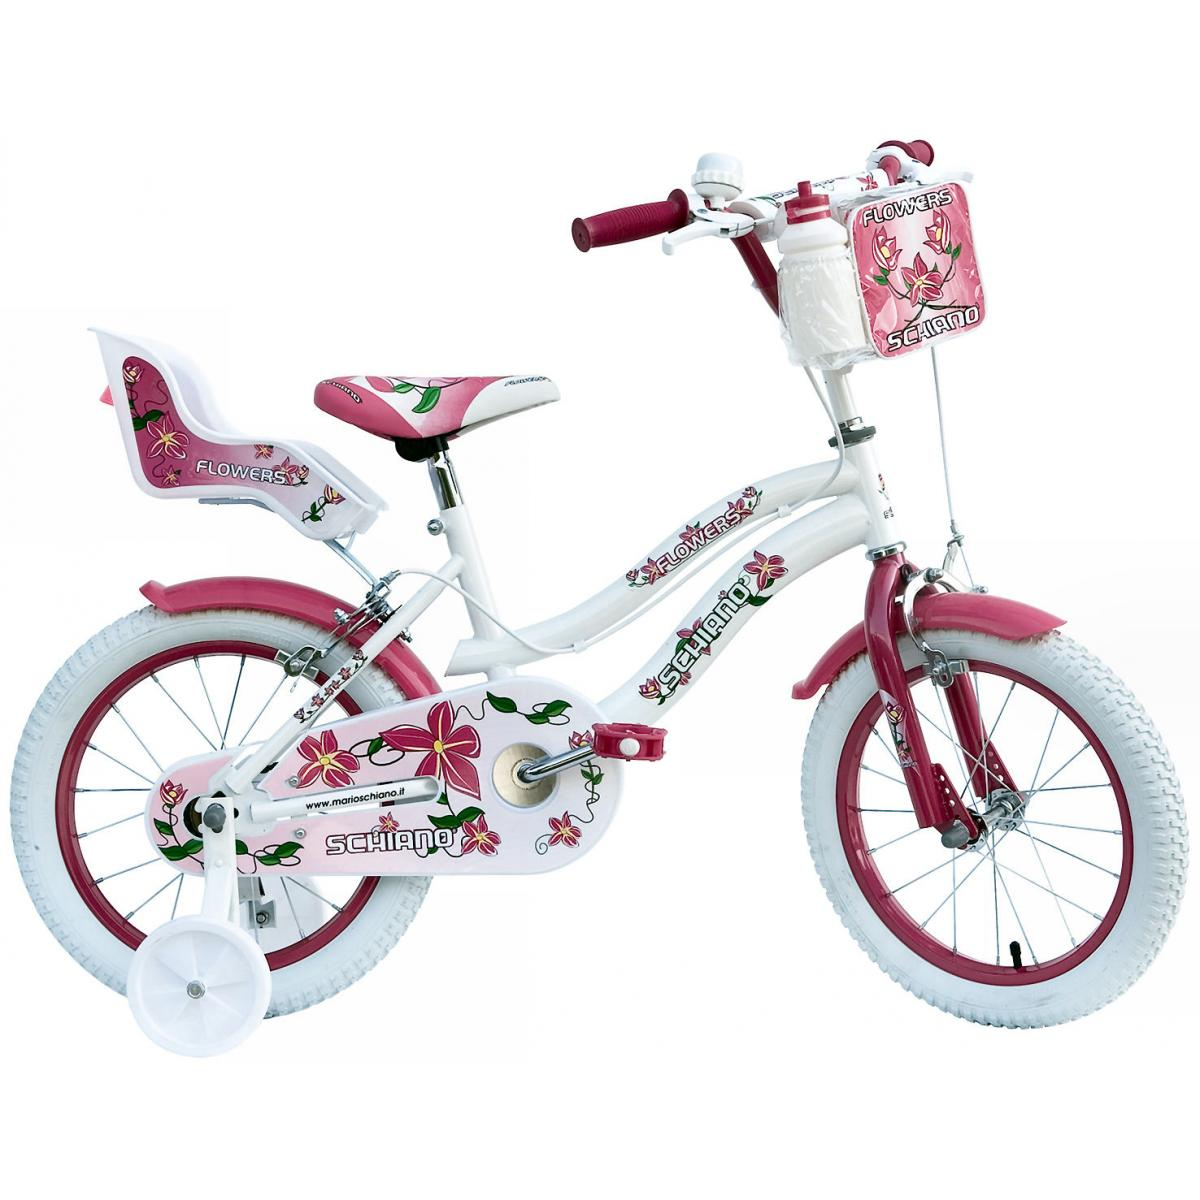 kinderfahrrad schiano flowers 14 zoll fahrrad kinder 3 4. Black Bedroom Furniture Sets. Home Design Ideas